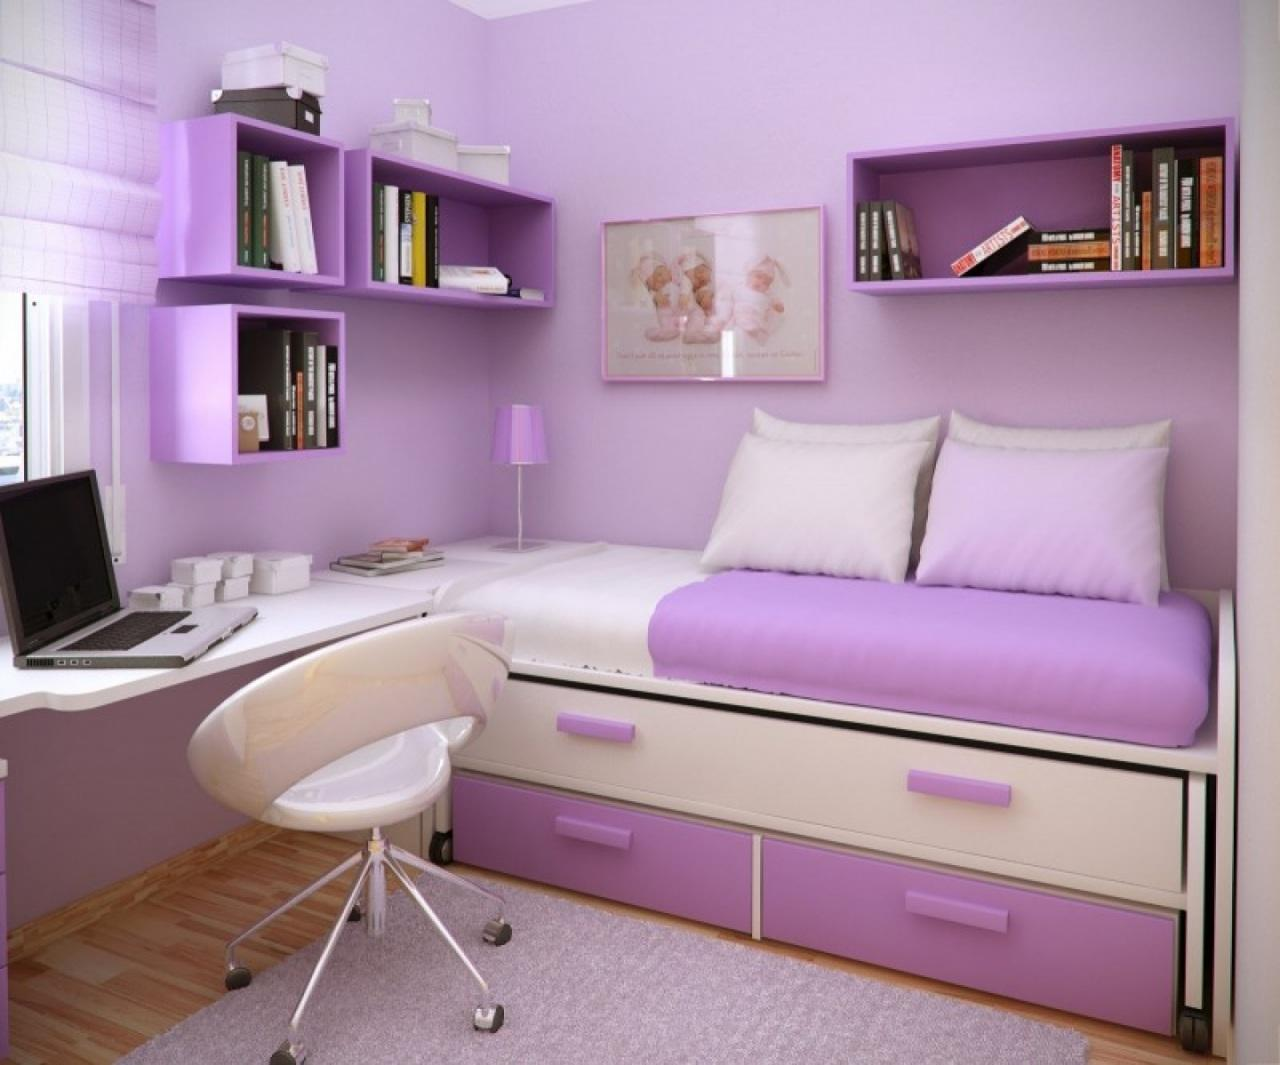 Epic good teenage bedroom ideas room paint ideas for teenage girl decor teenage bedroom